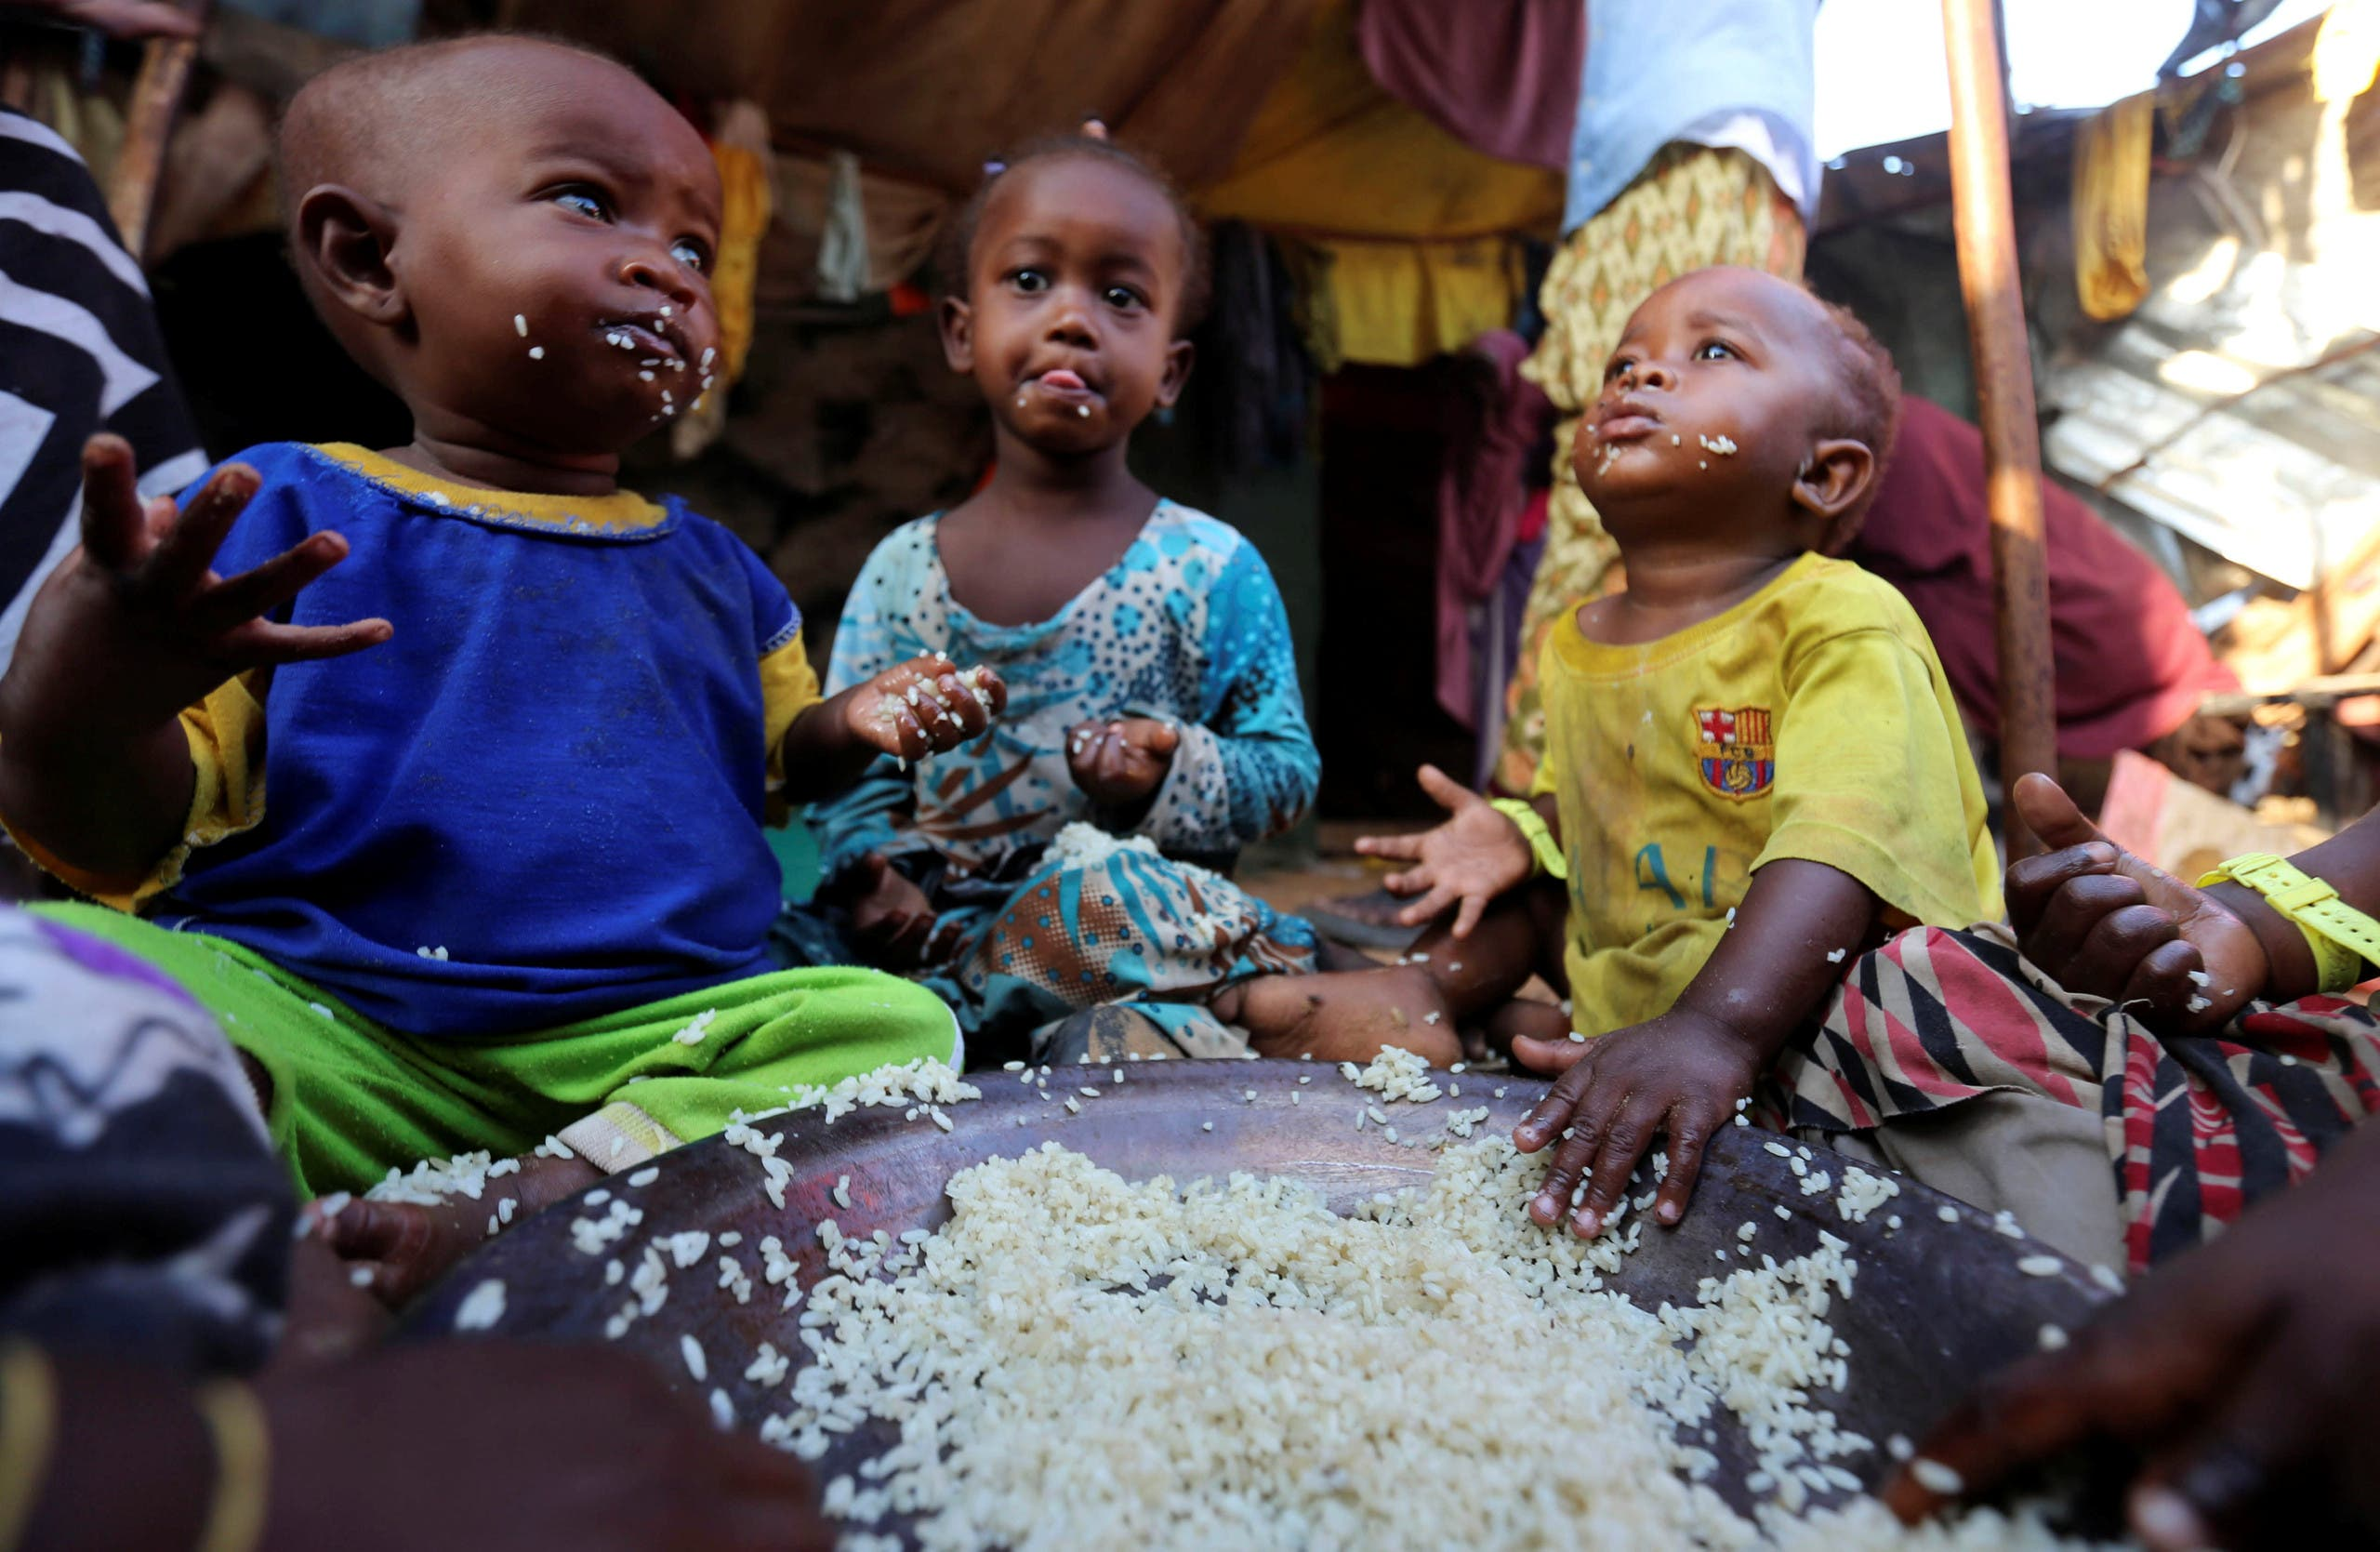 Internally displaced Somali children eat boiled rice outside their family's makeshift shelter at the Al-cadaala camp in Somalia's capital Mogadishu March 6, 2017